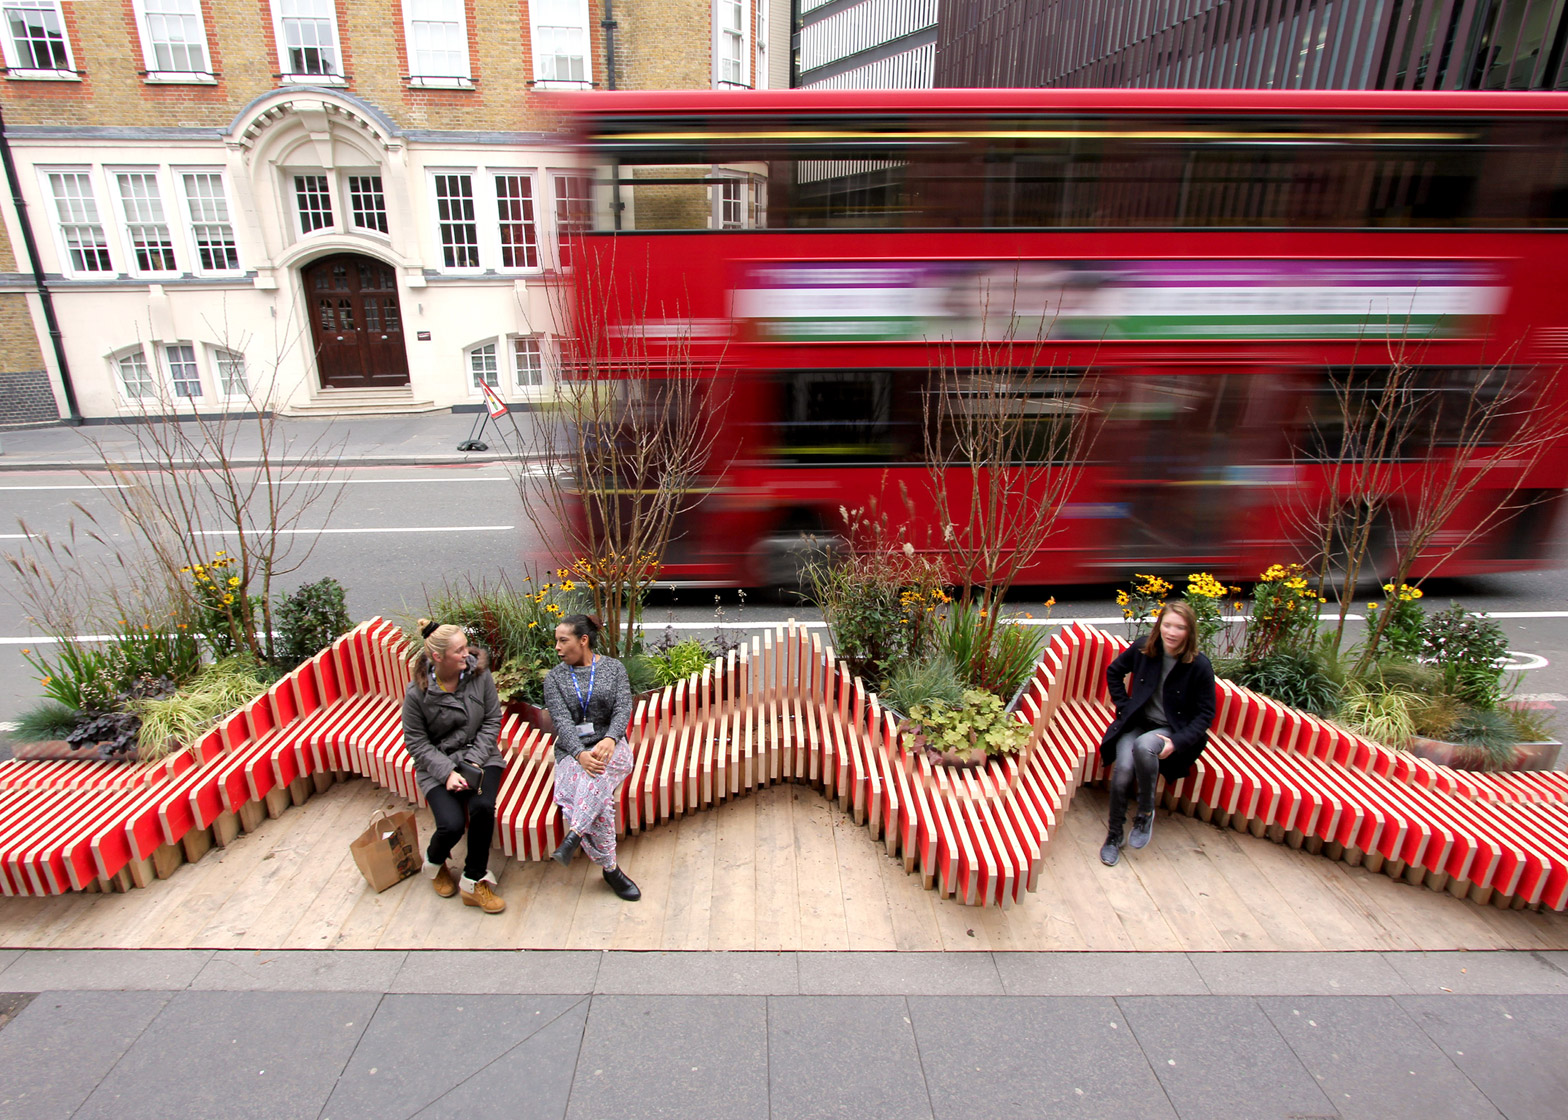 Parklet By Wmb Studio Adds Greenery To London S Streets